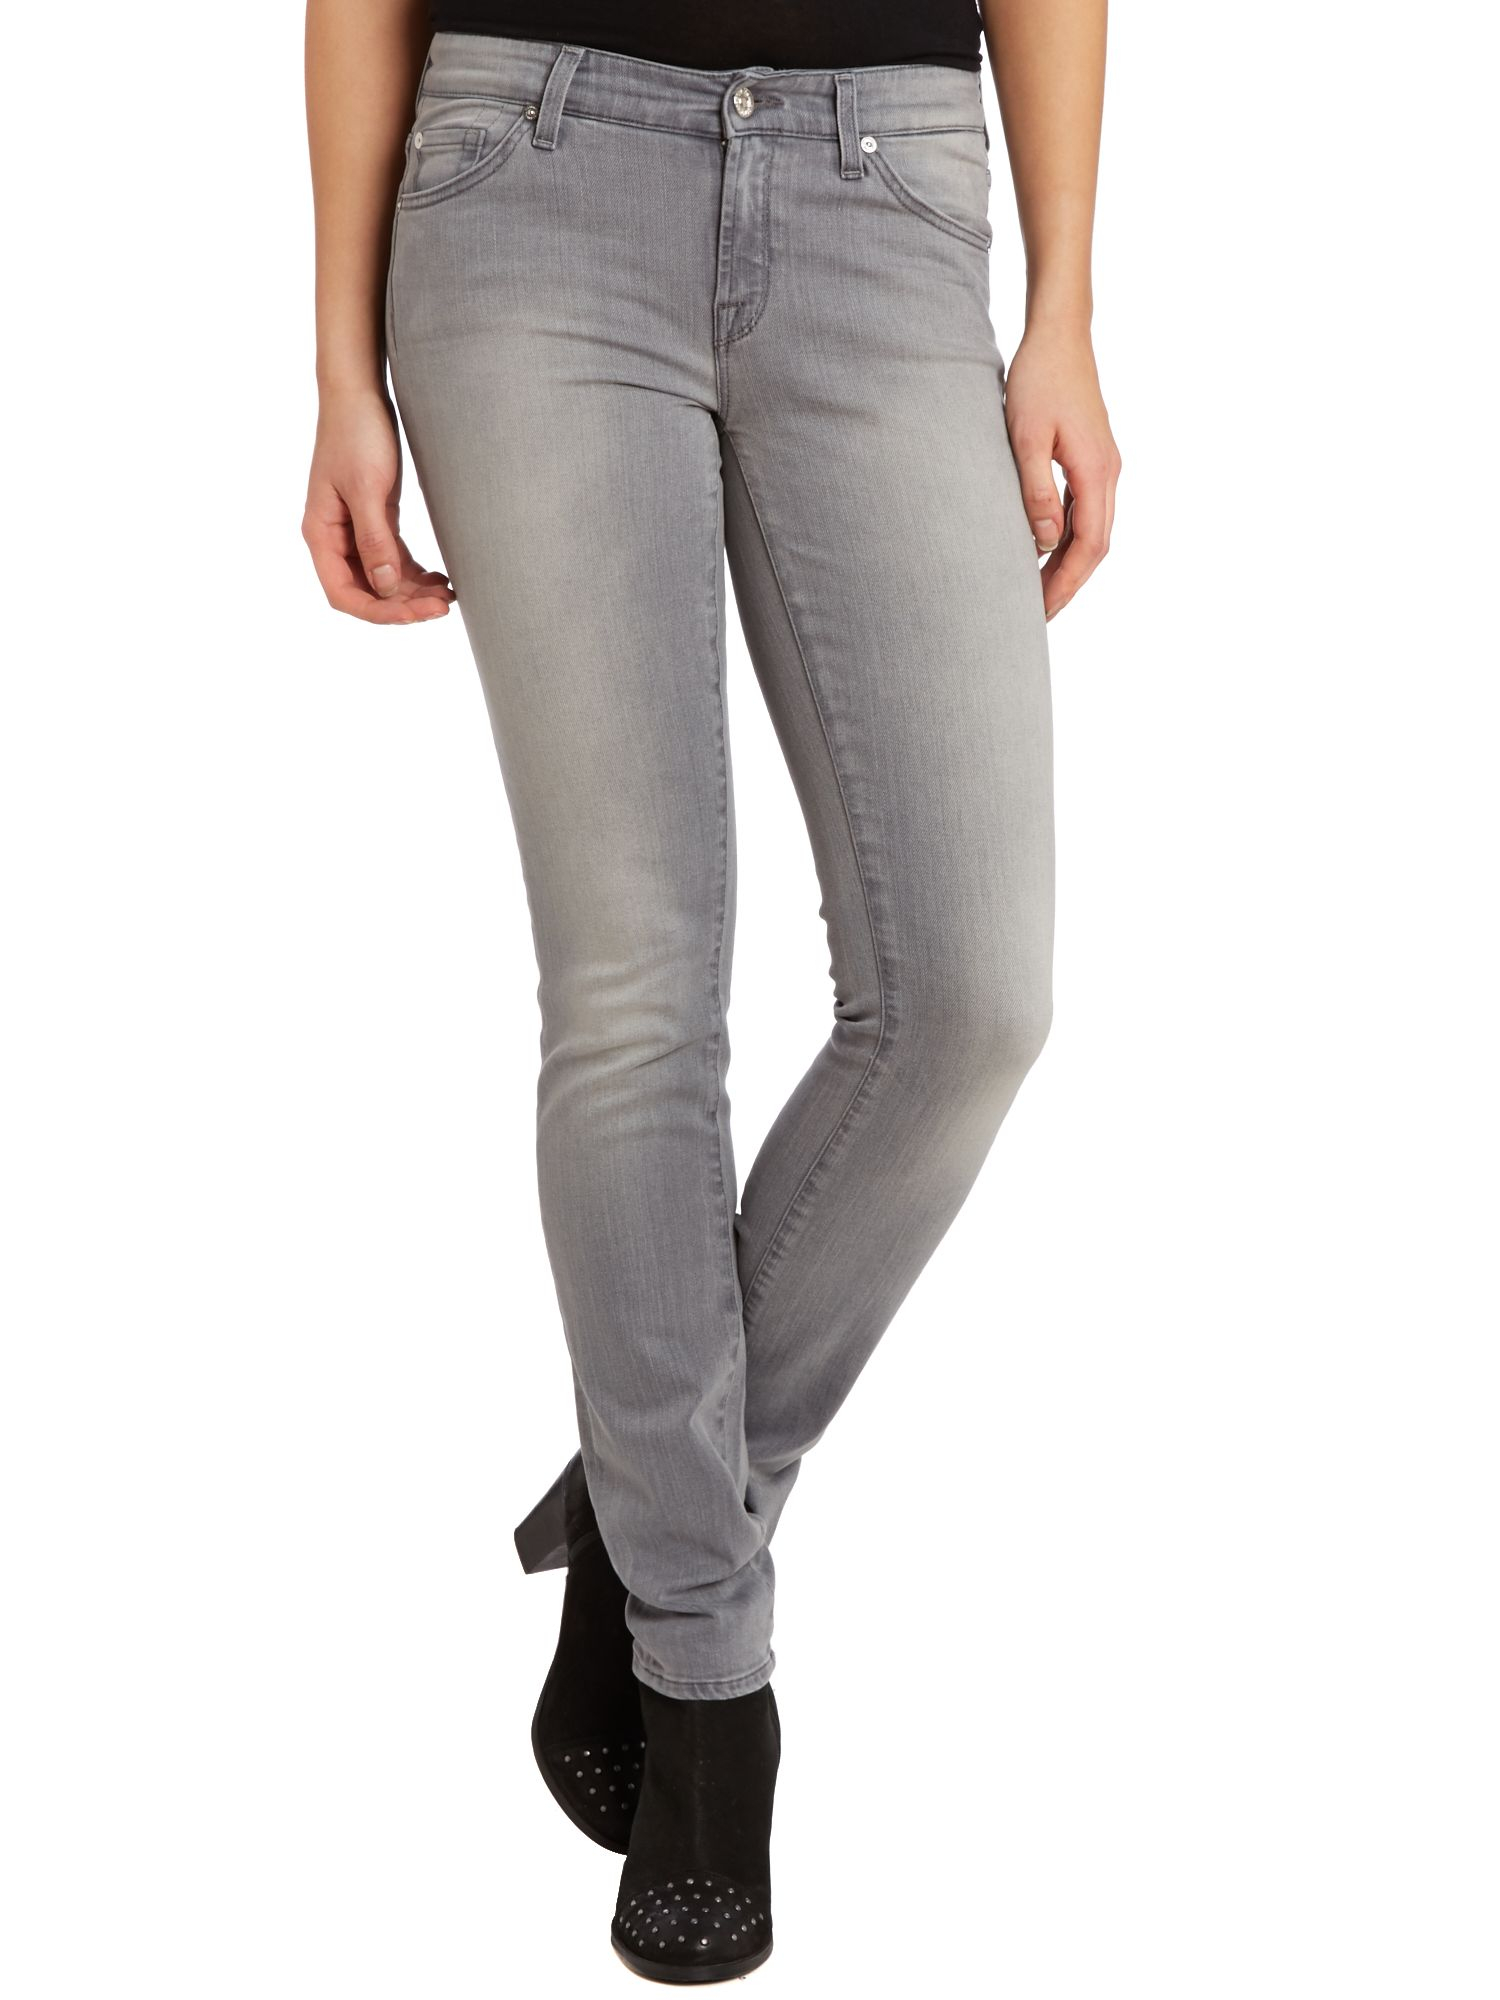 7 for all mankind cristen skinny jeans in smokey grey in. Black Bedroom Furniture Sets. Home Design Ideas